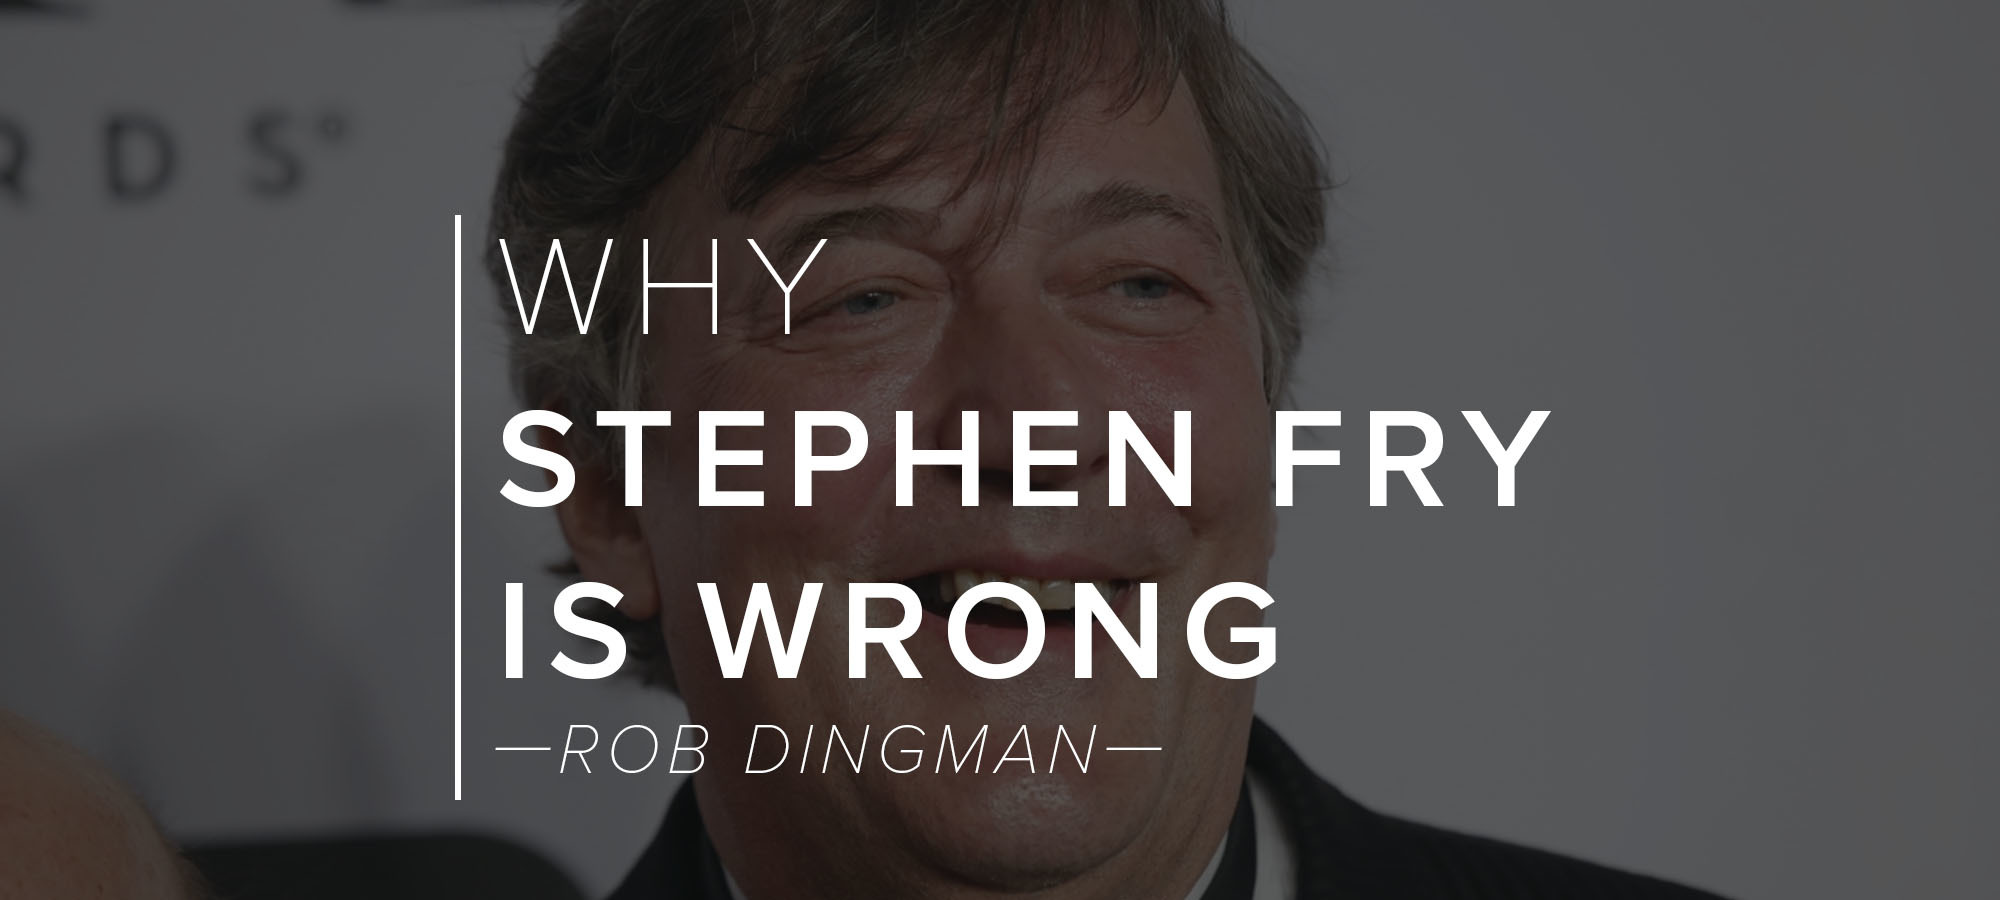 Why Stephen Fry is Wrong